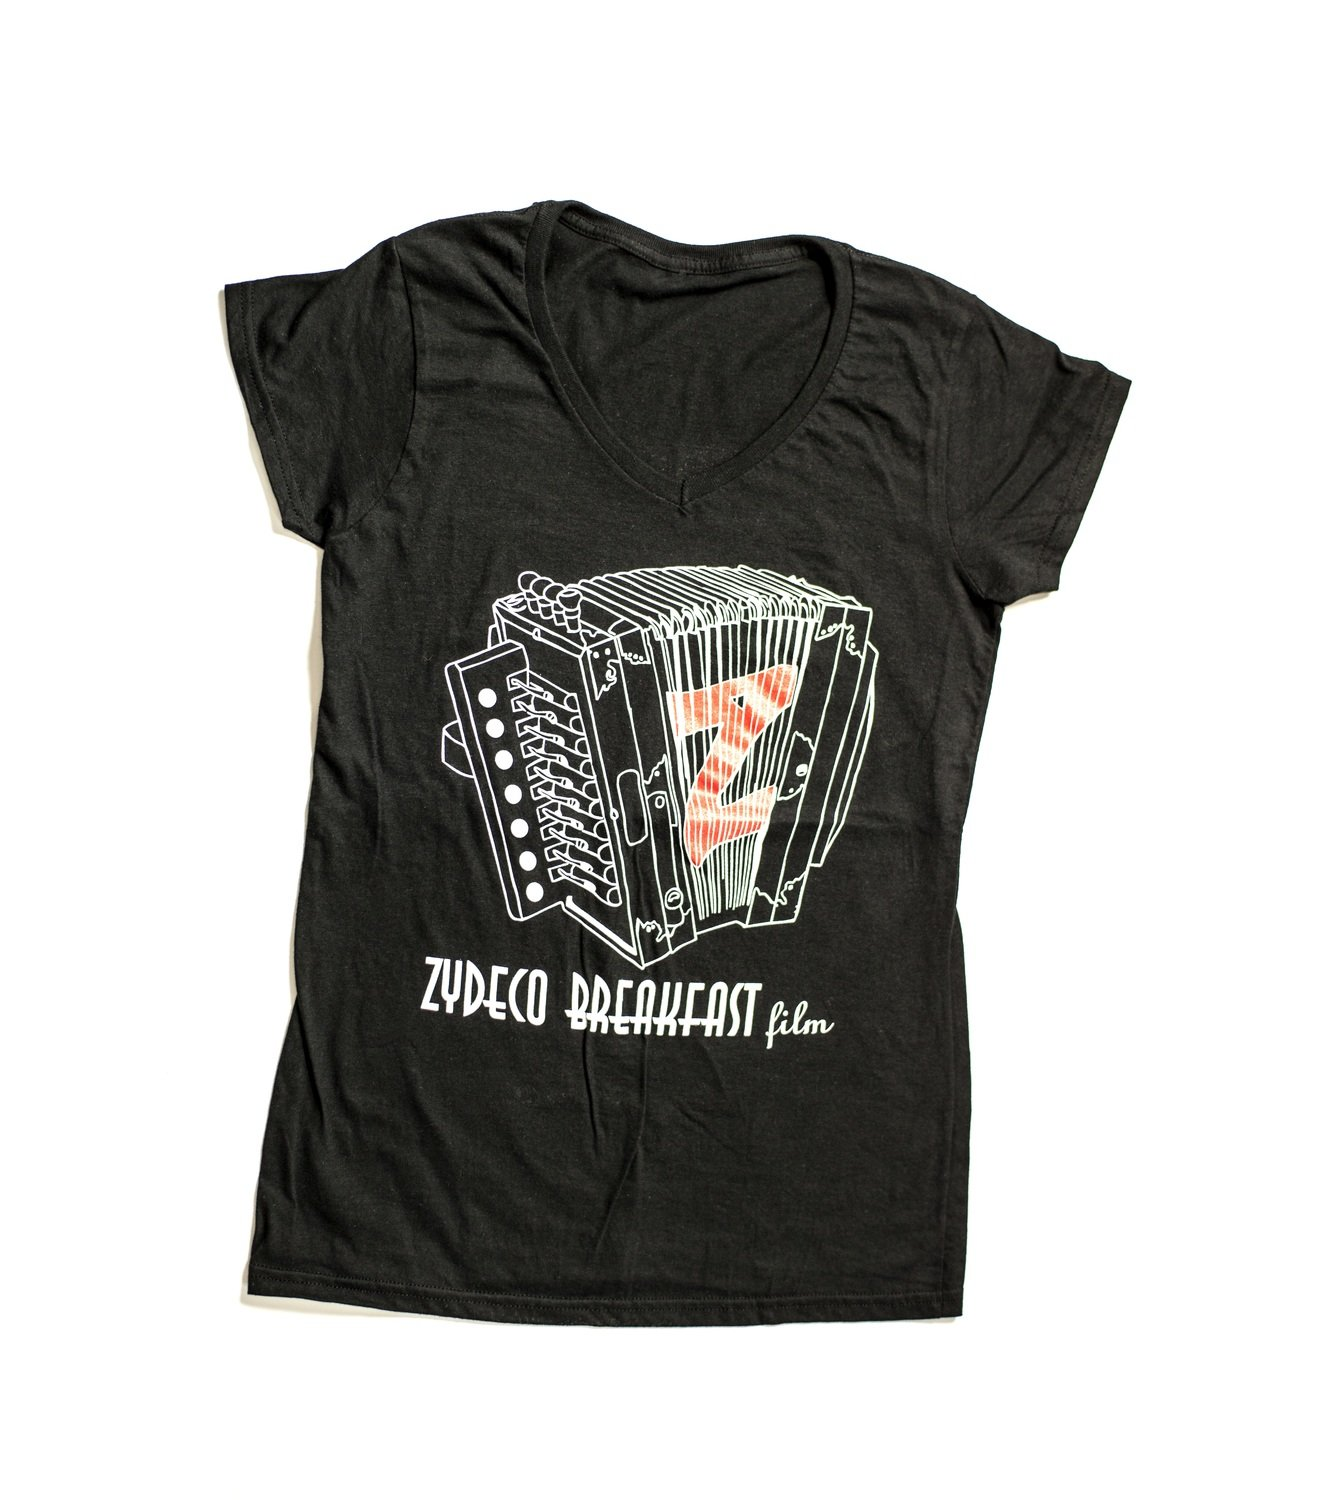 Zydeco Breakfast T-Shirt Women's